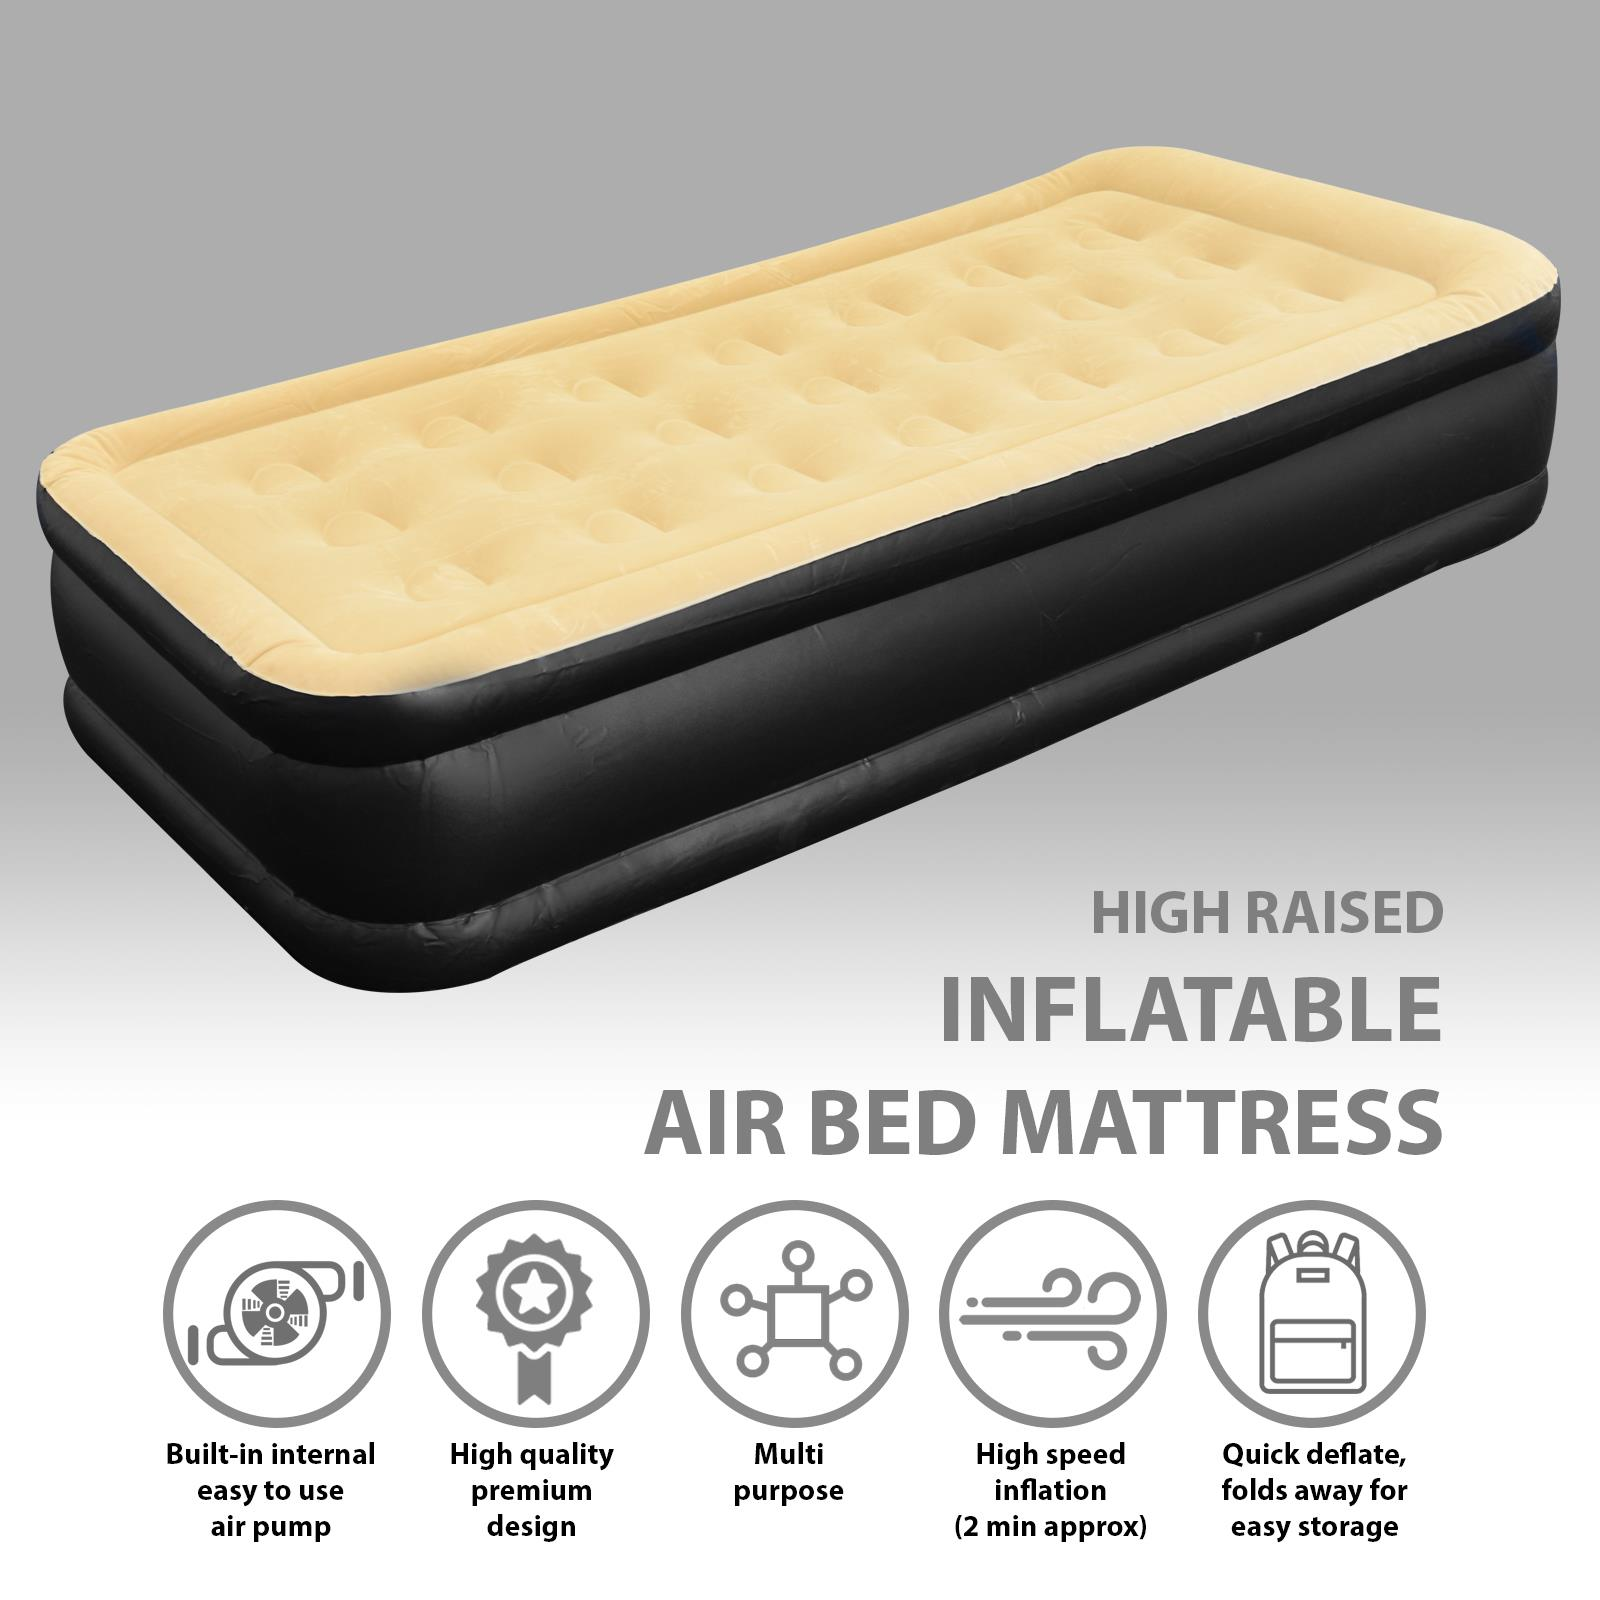 Jilong-Luxury-Air-Bed-Mattress-Soft-Flocked-Inflatable-Relaxing-Airbed-Camping thumbnail 5